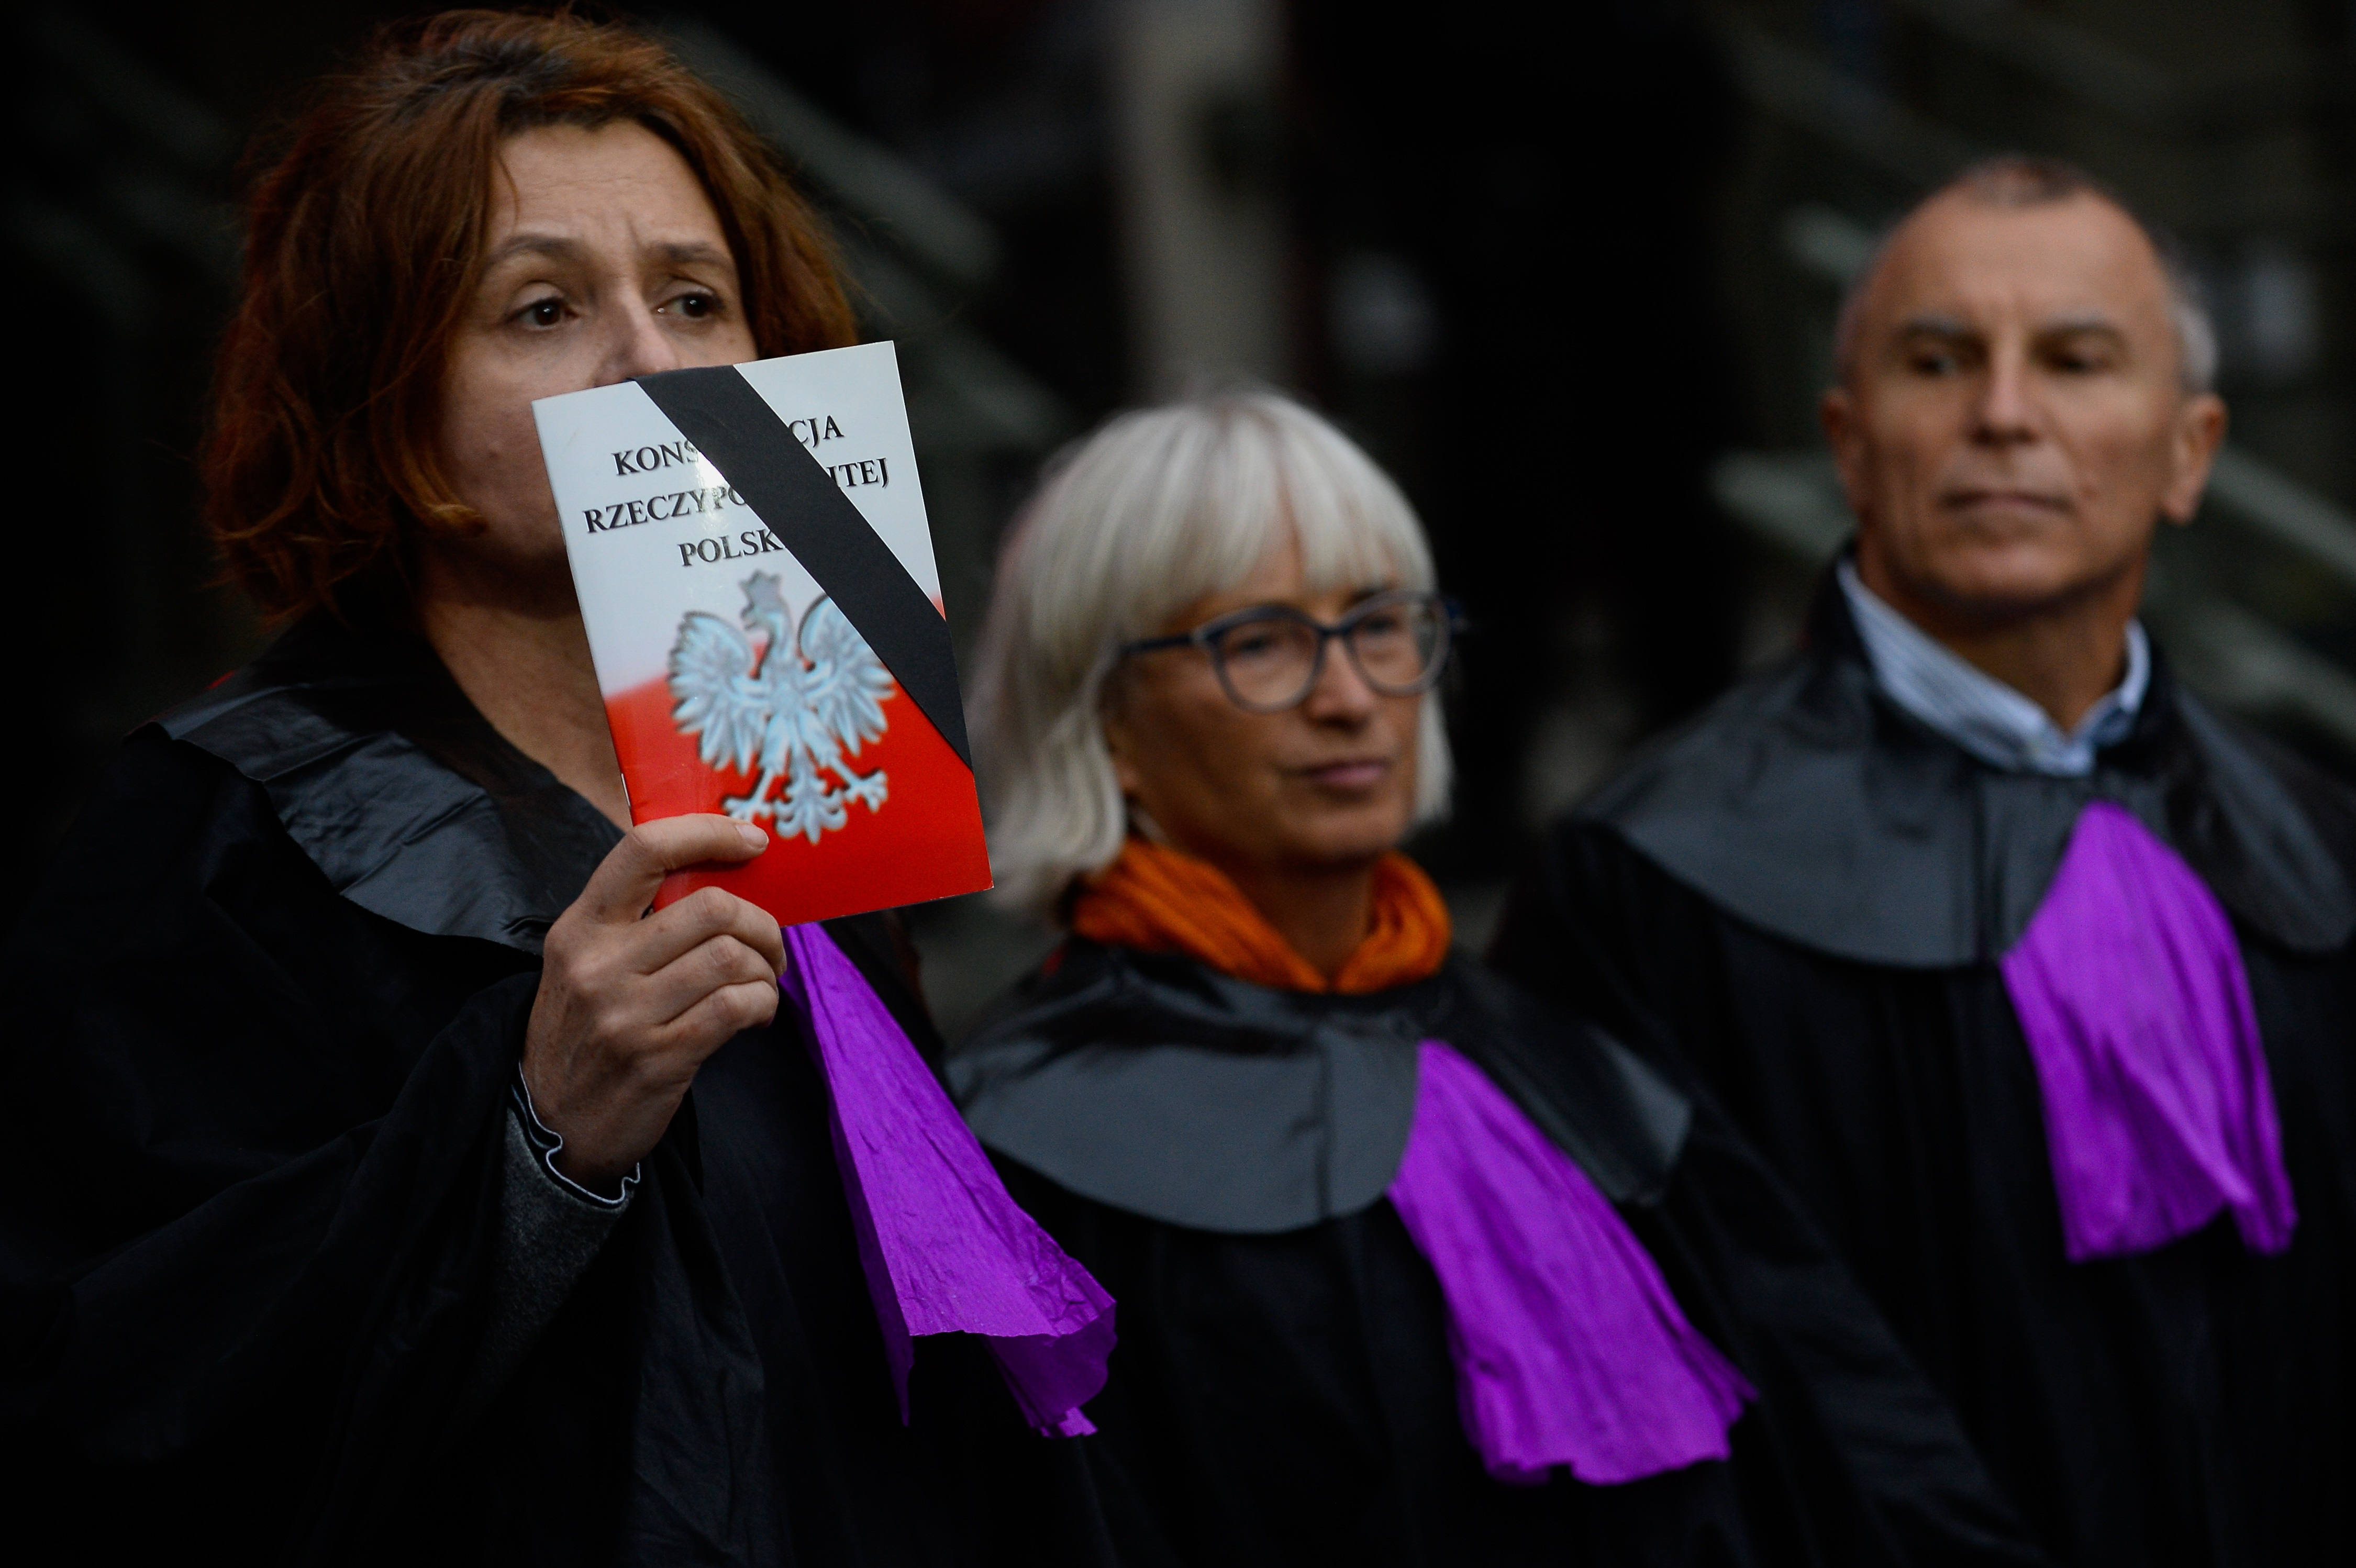 Poland judges protest against government reform june 2019.jpg